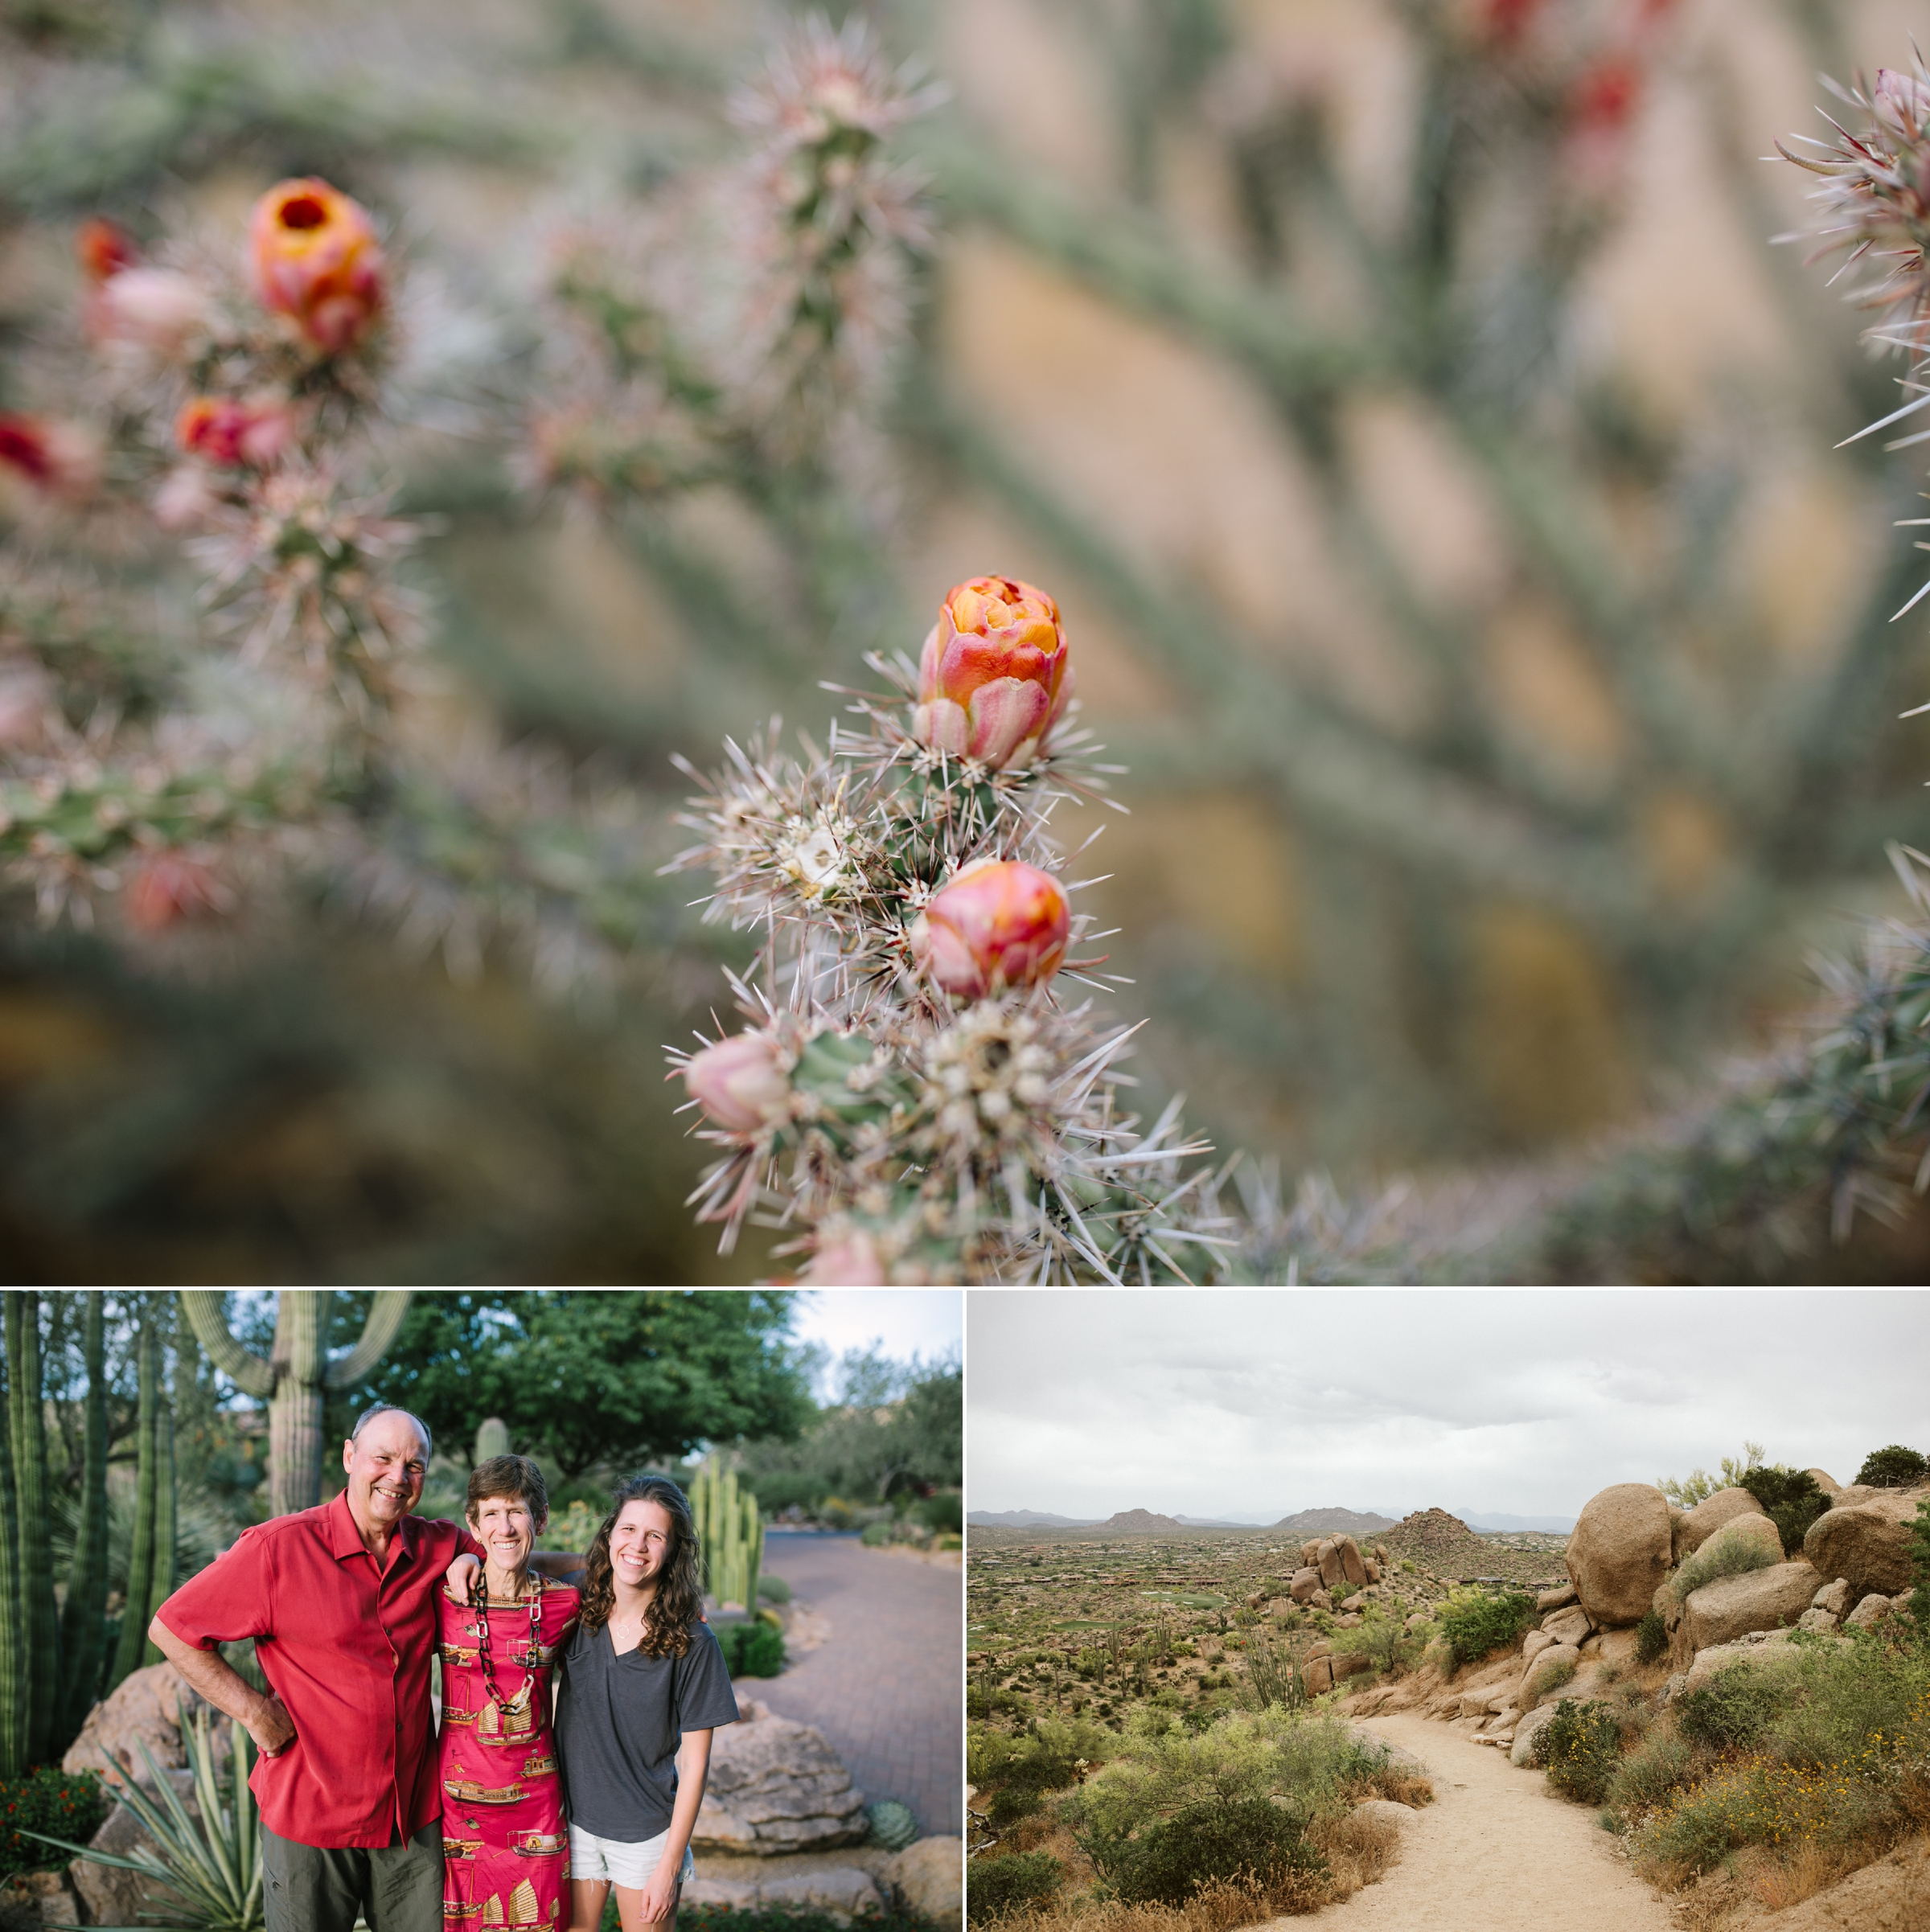 catie-bergman-arizona-southwest-hipster-seattlefamily-seattle-family-pnw-first-birthday-lifestylephotography-catie-bergman-photography-elopement-landscape-travel-wedding-pnw-portrait-lifestylephotography-vsco-northwest-friends-love_0022.jpg